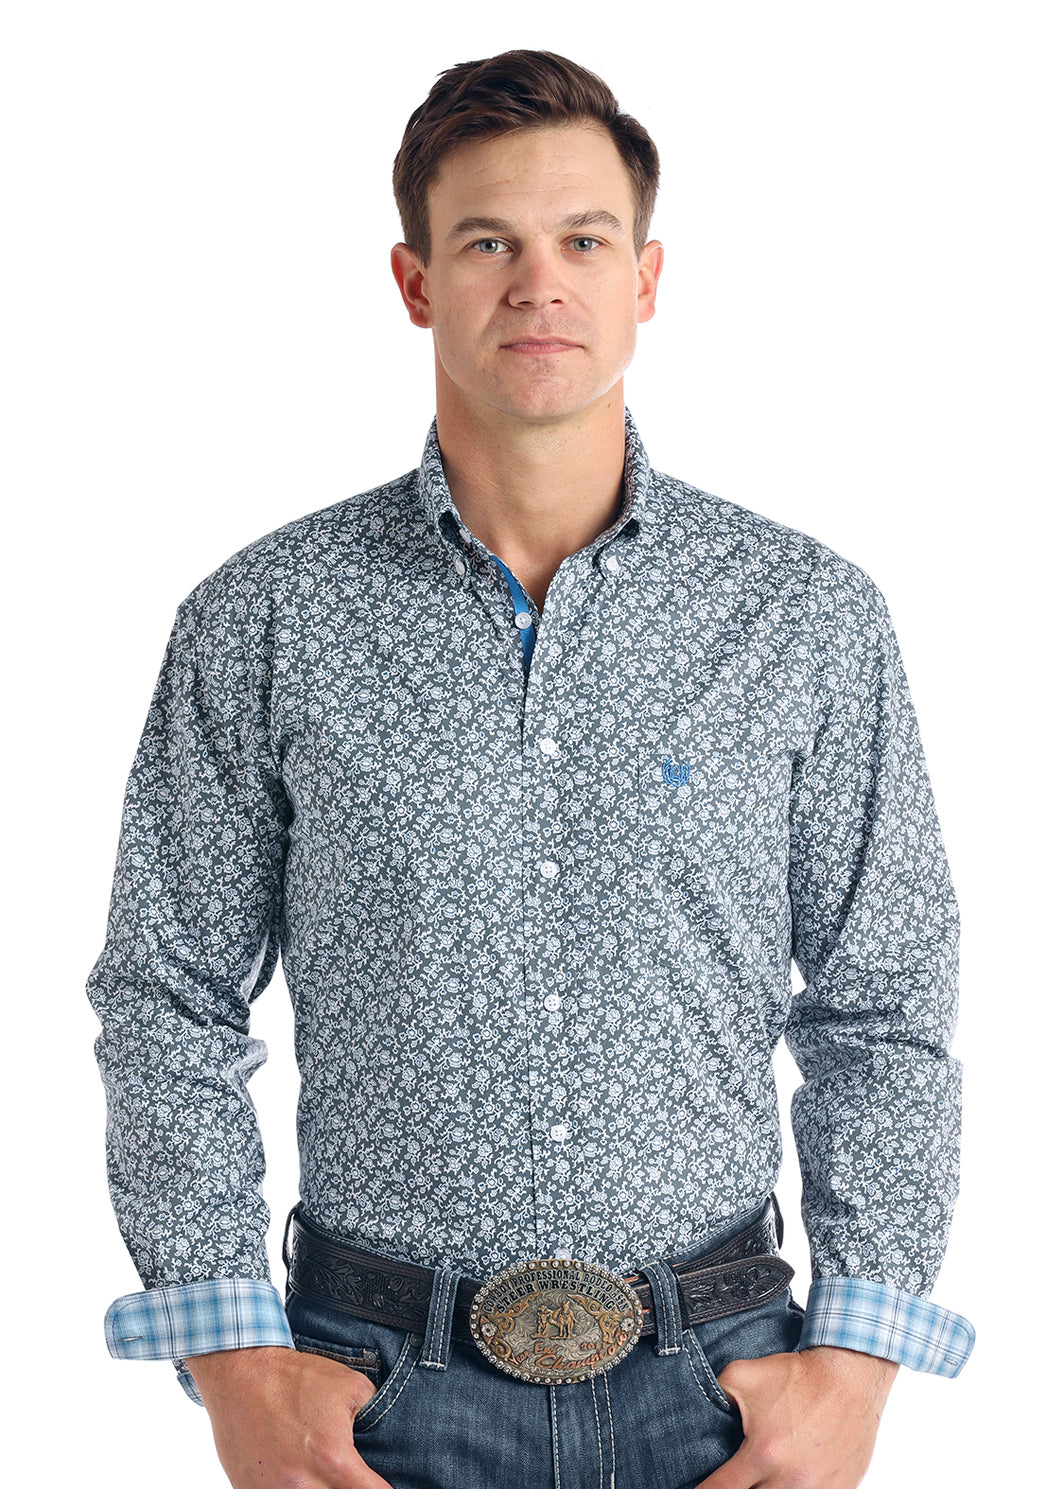 Panhandle Langunita Vintage Print Men's Button Down Shirt